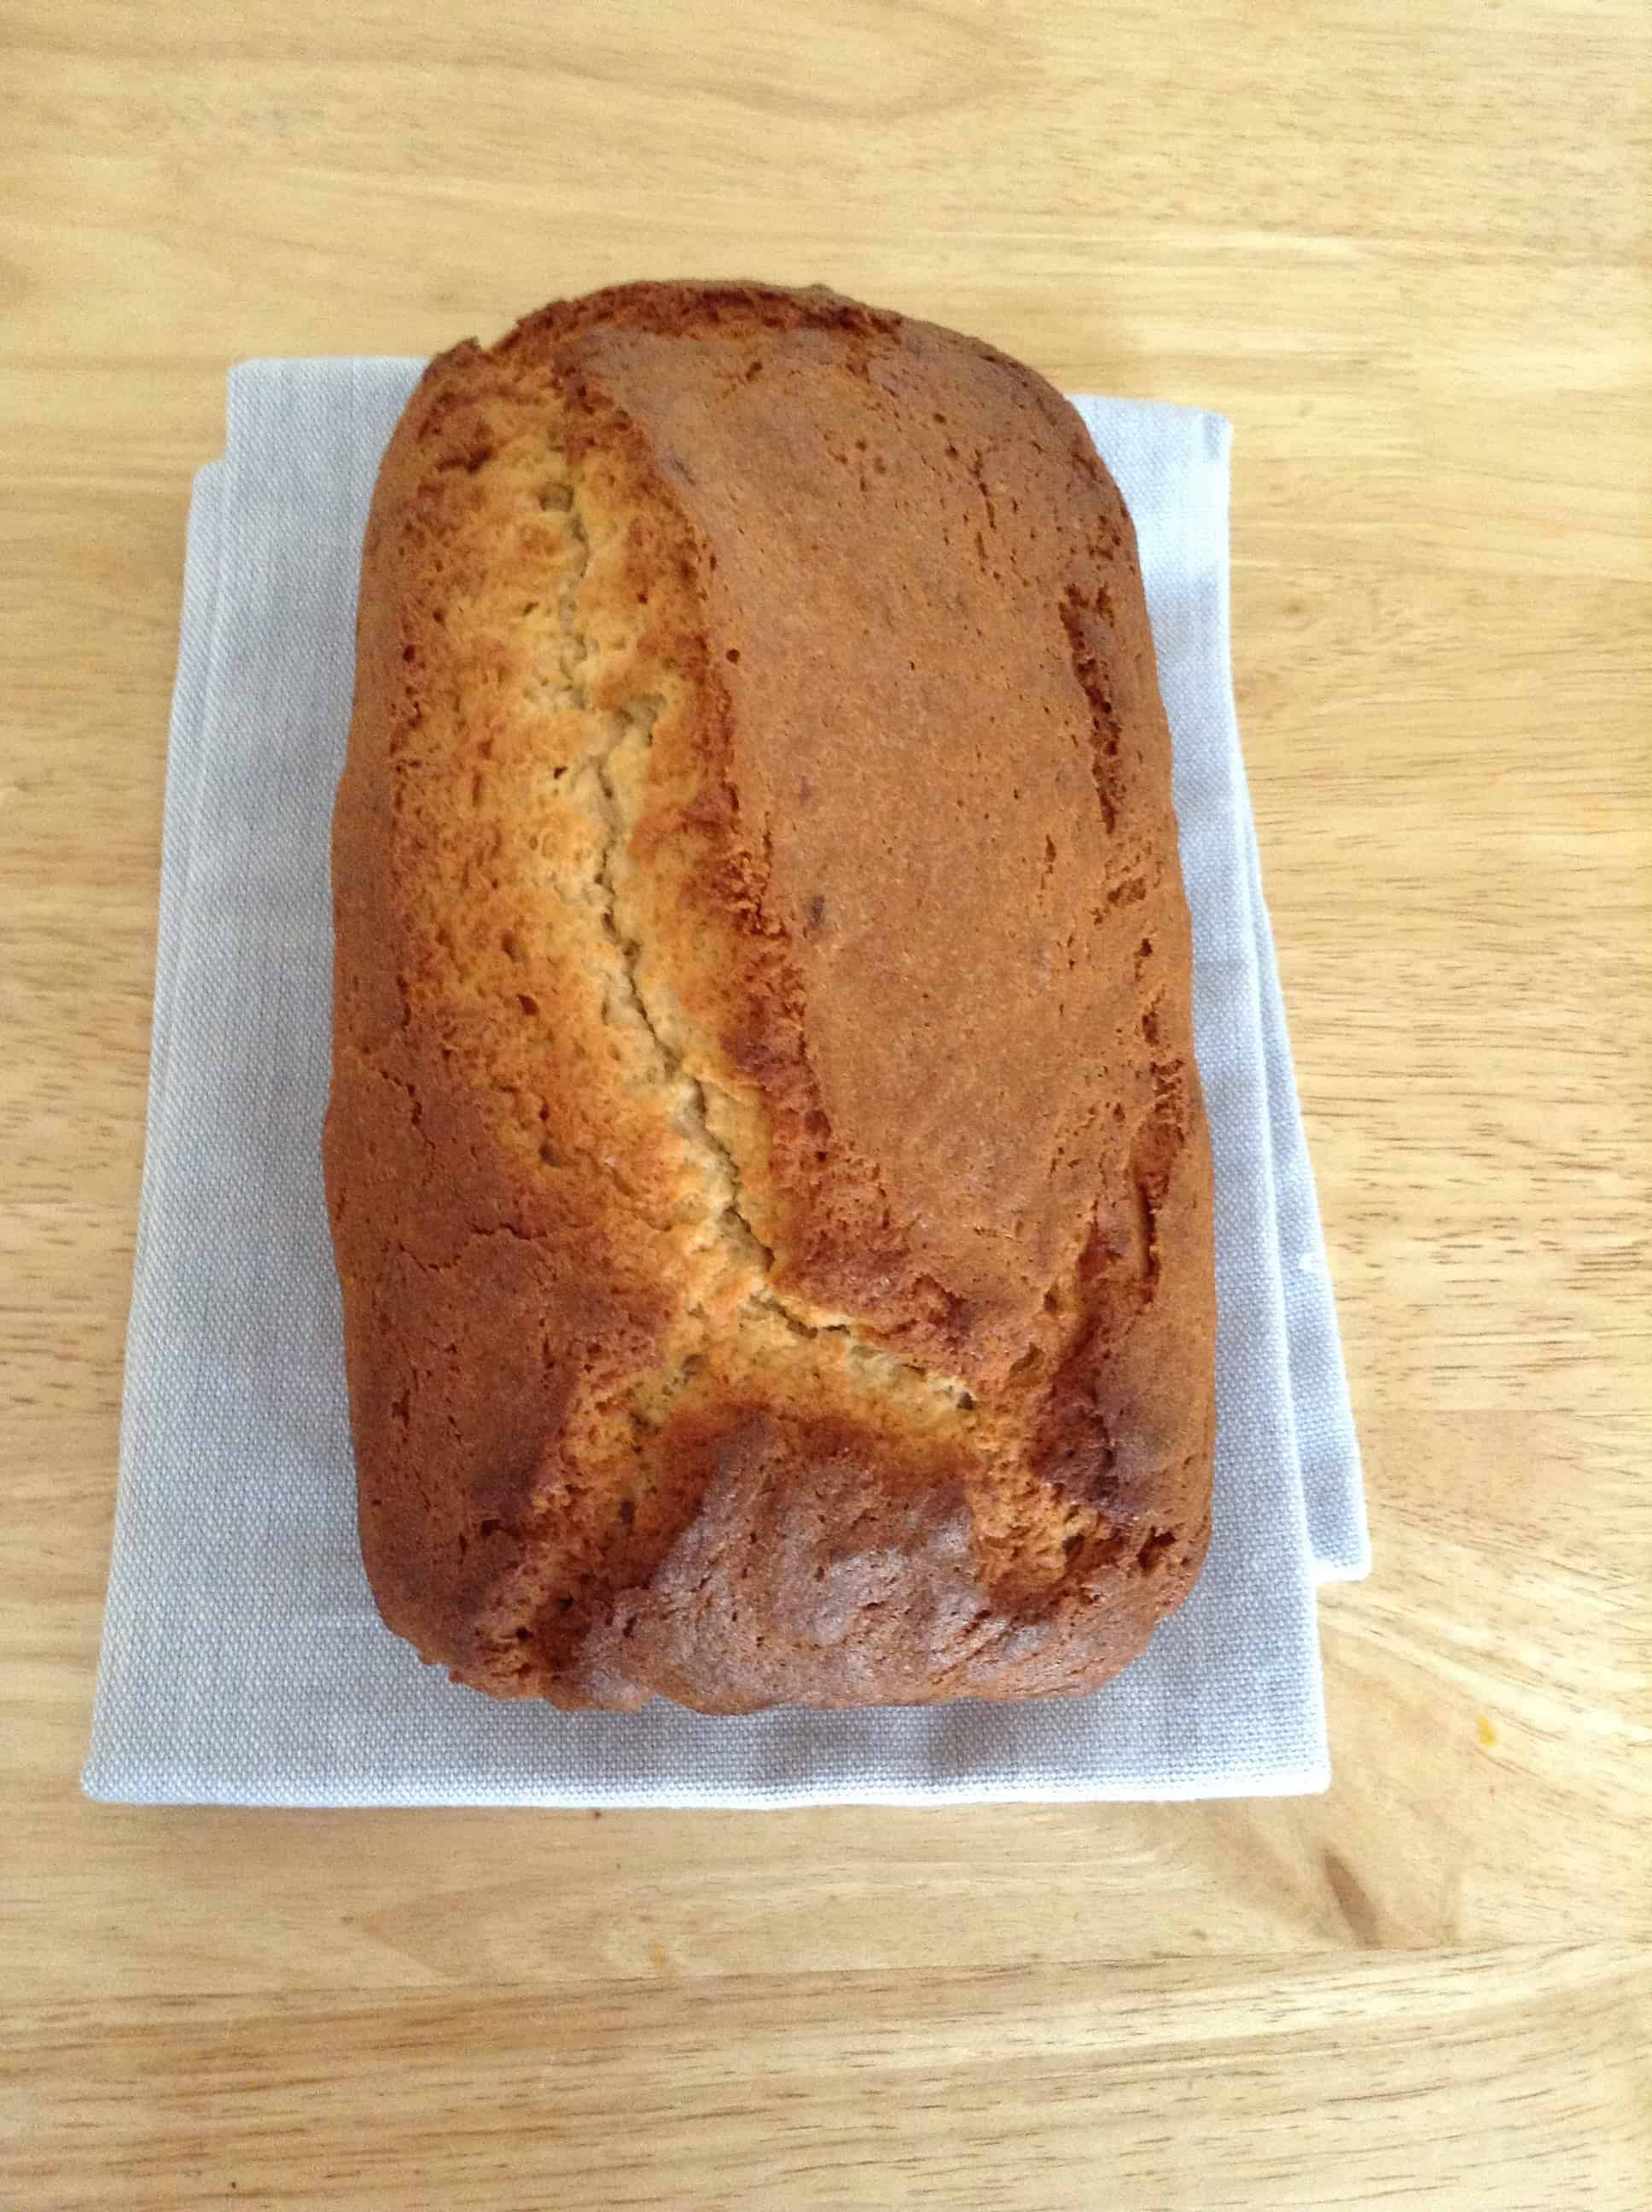 Peanut butter and banana loaf by BakingQueen74